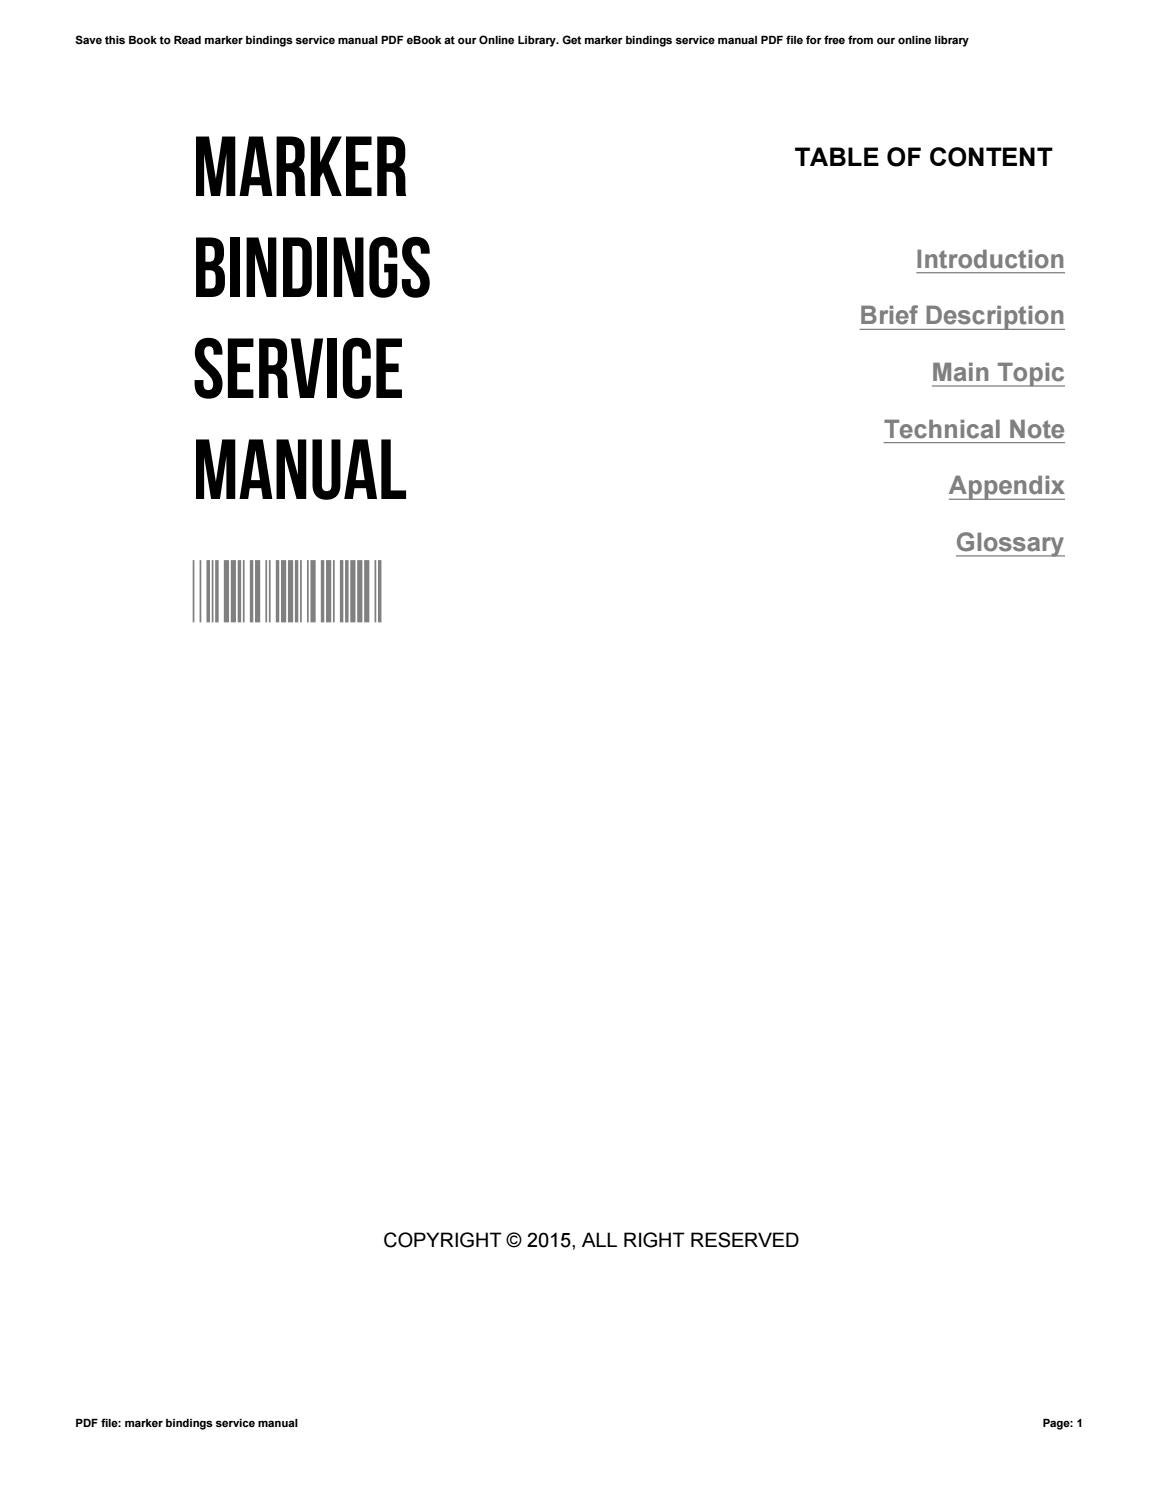 Marker bindings service manual by ChristinaMichaels3069